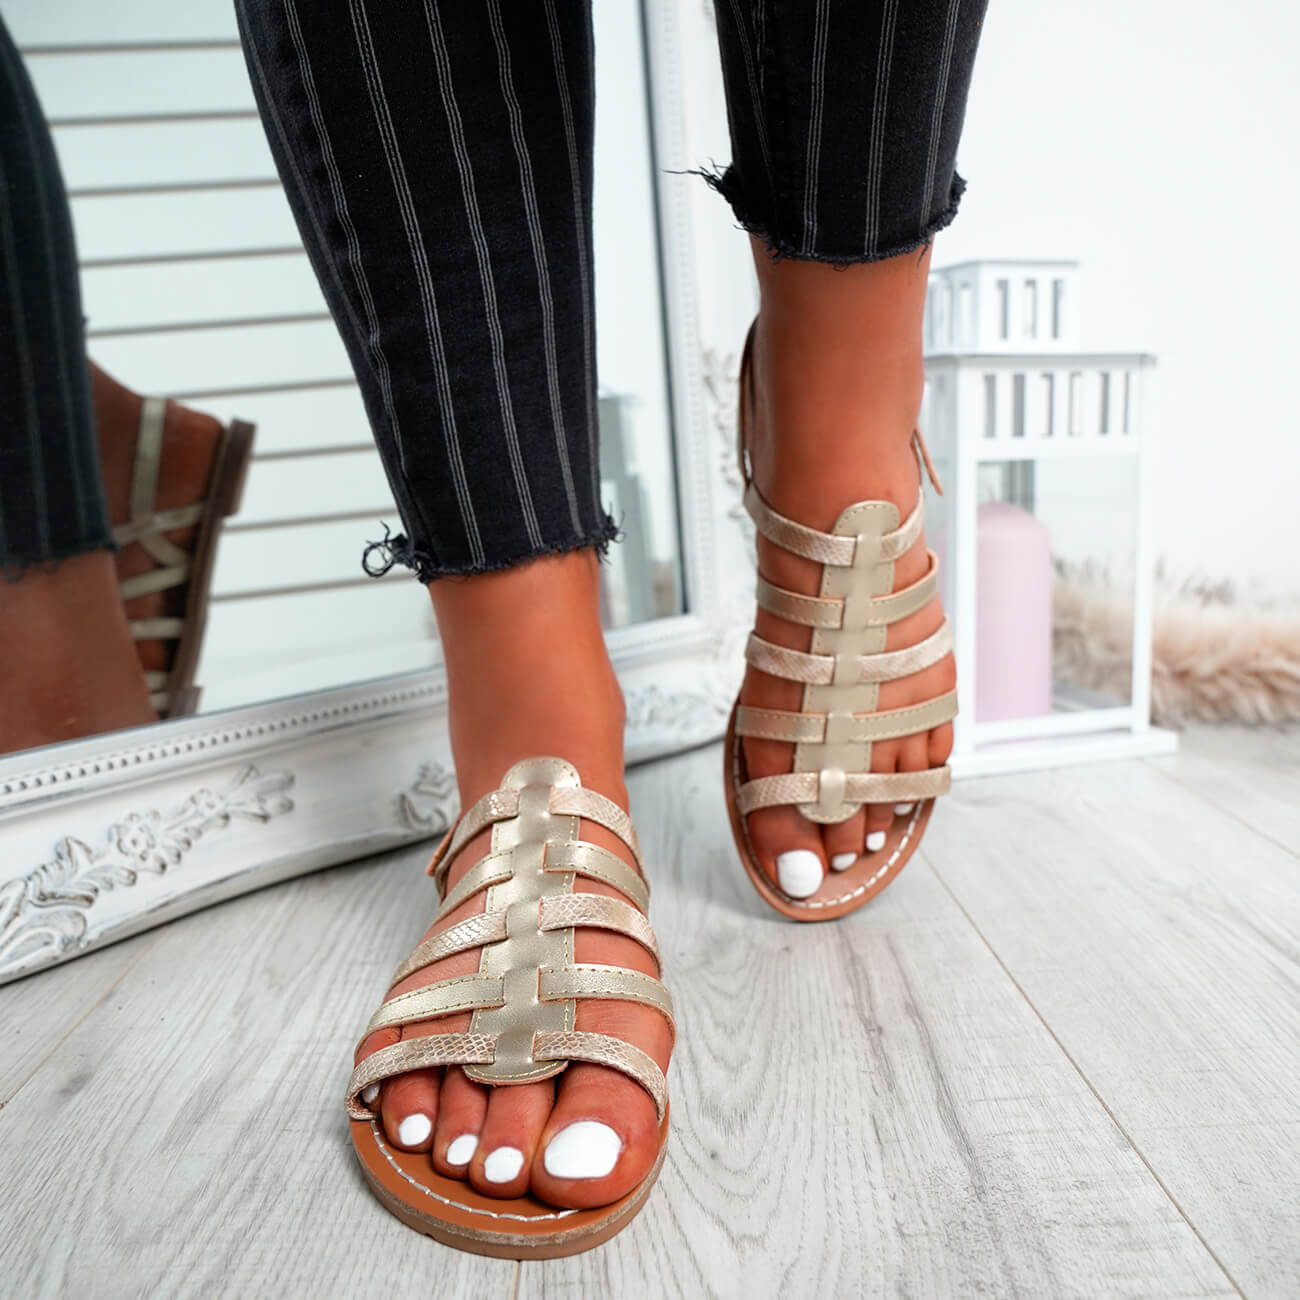 WOMENS-LADIES-BUCKLE-STRAP-FLAT-SUMMER-SANDALS-CASUAL-HOLIDAY-COMFY-SHOES-SIZE thumbnail 37